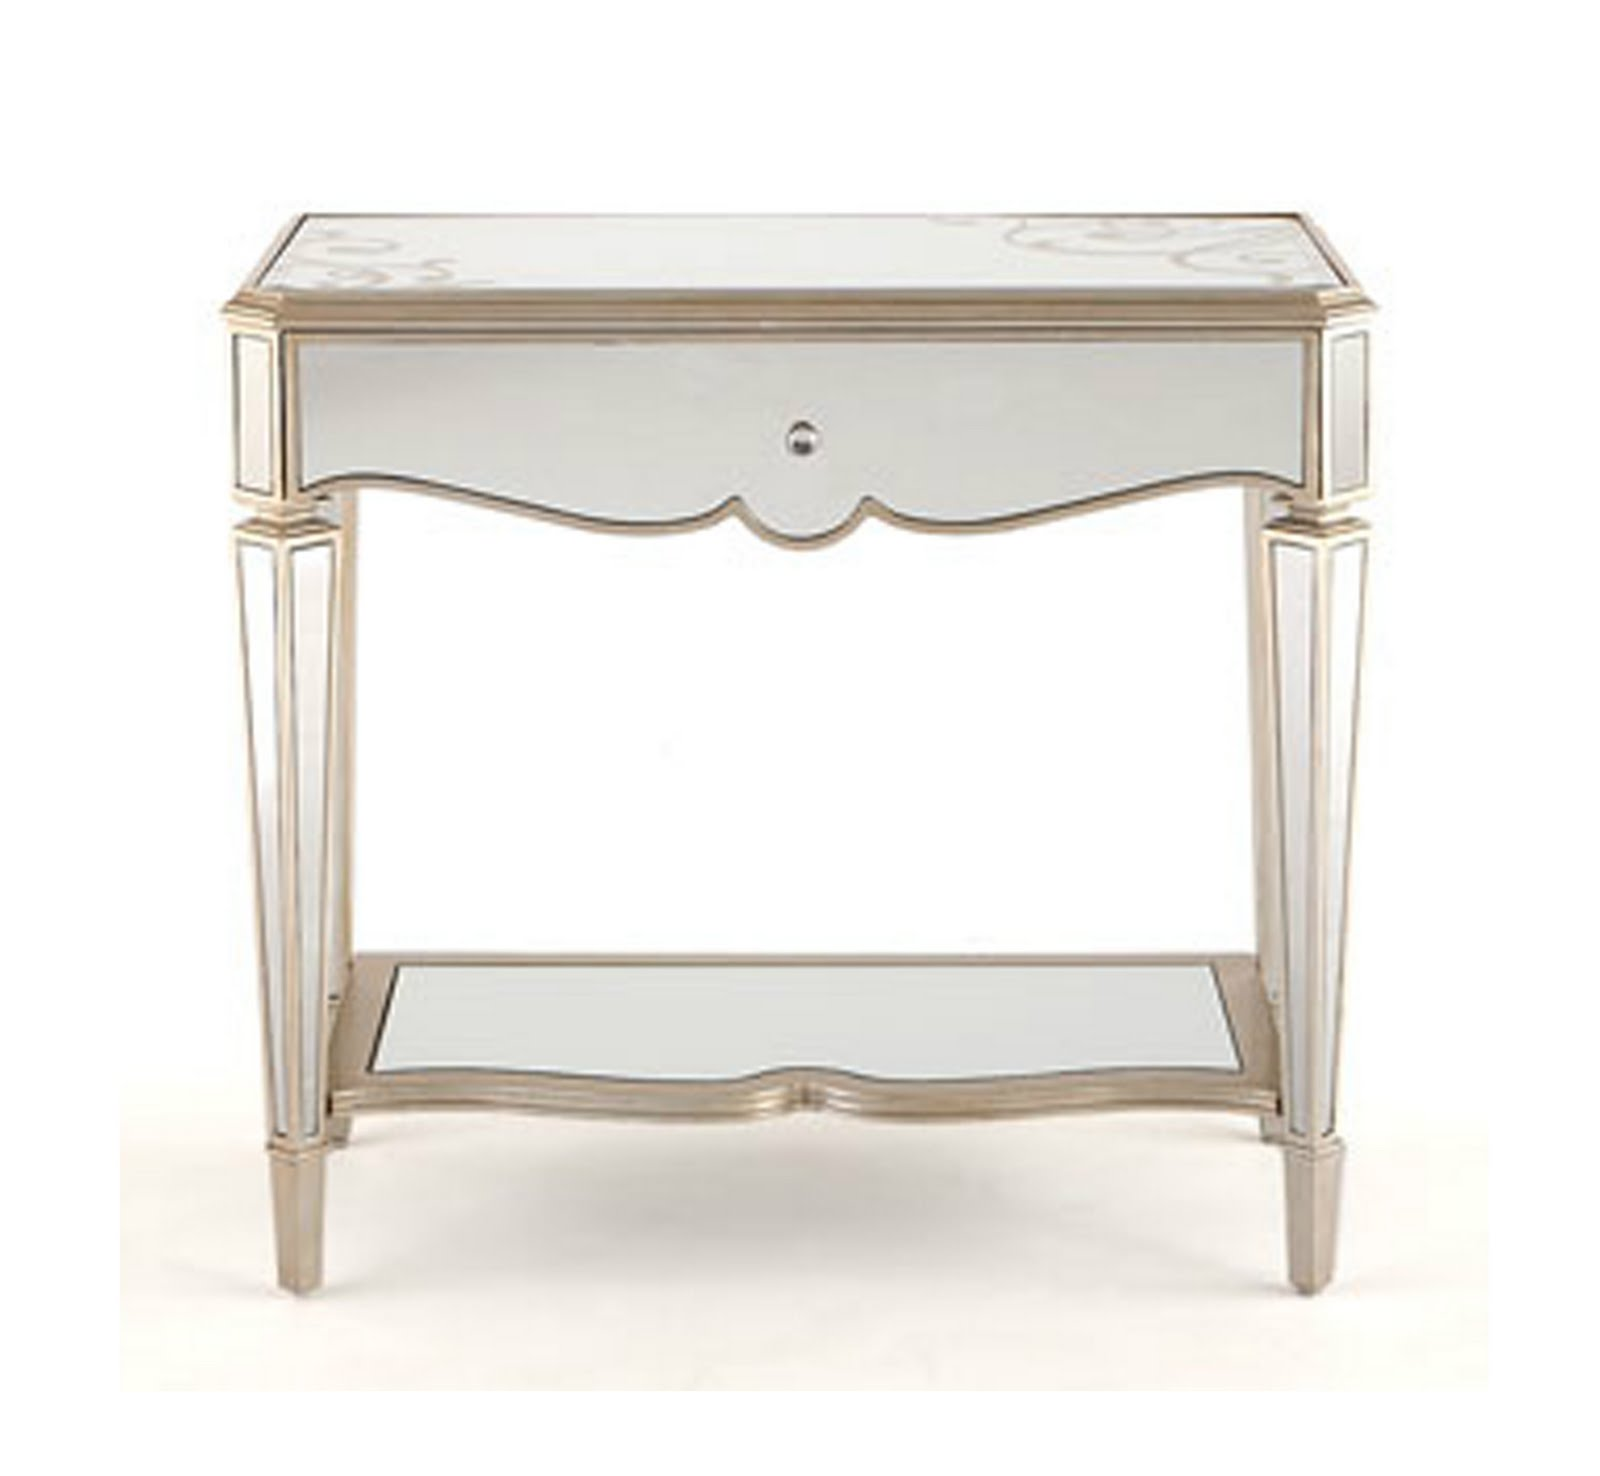 furniture elegant mirrored accent table for home ideas with curvy detail and single drawer shelf target round pedestal side desks inch coff yellow rug turners sliding barn door